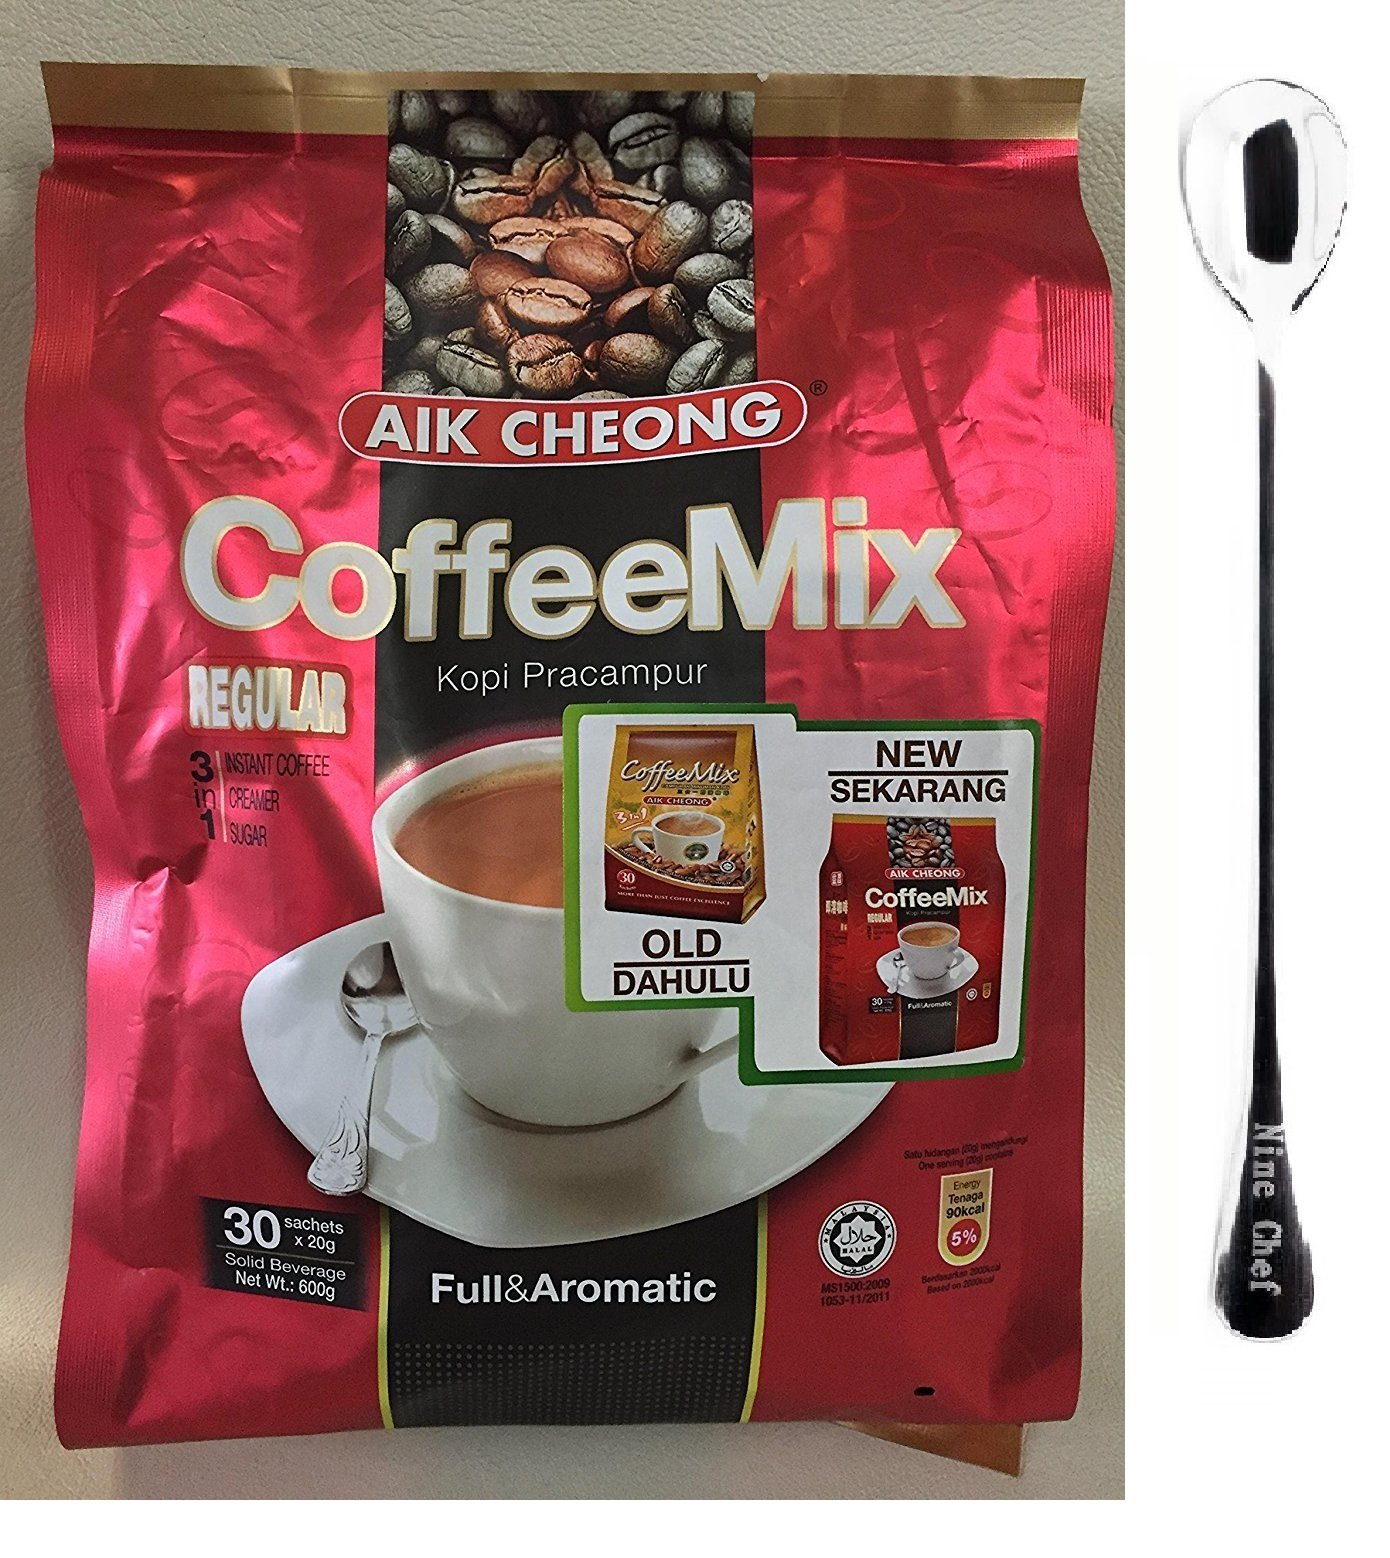 Aik Cheong Regular Instant 3in1 Coffee Mix Kopi Pracampur (10 Pack)+ one NineChef Spoon by NineChef